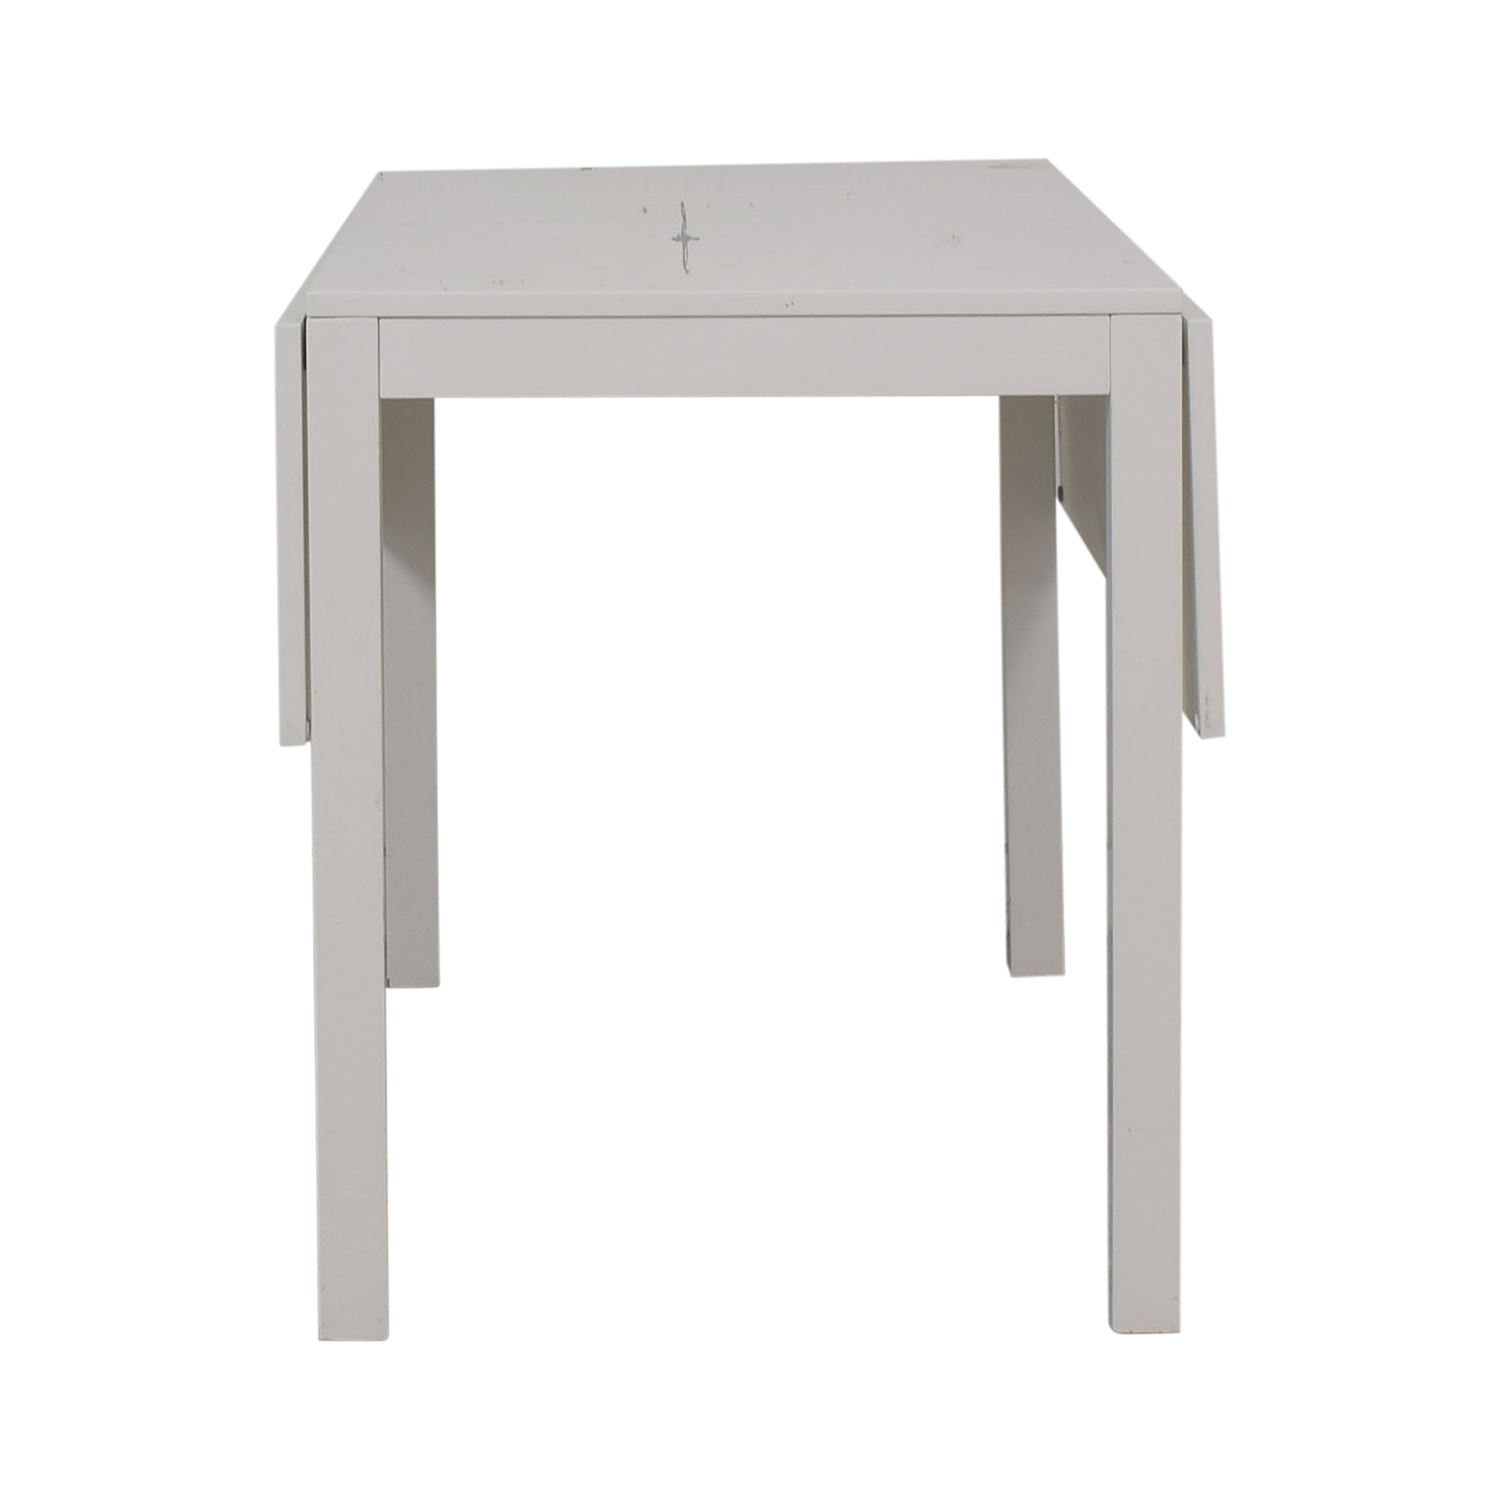 CB2 CB2 Drop Leaf Table dimensions